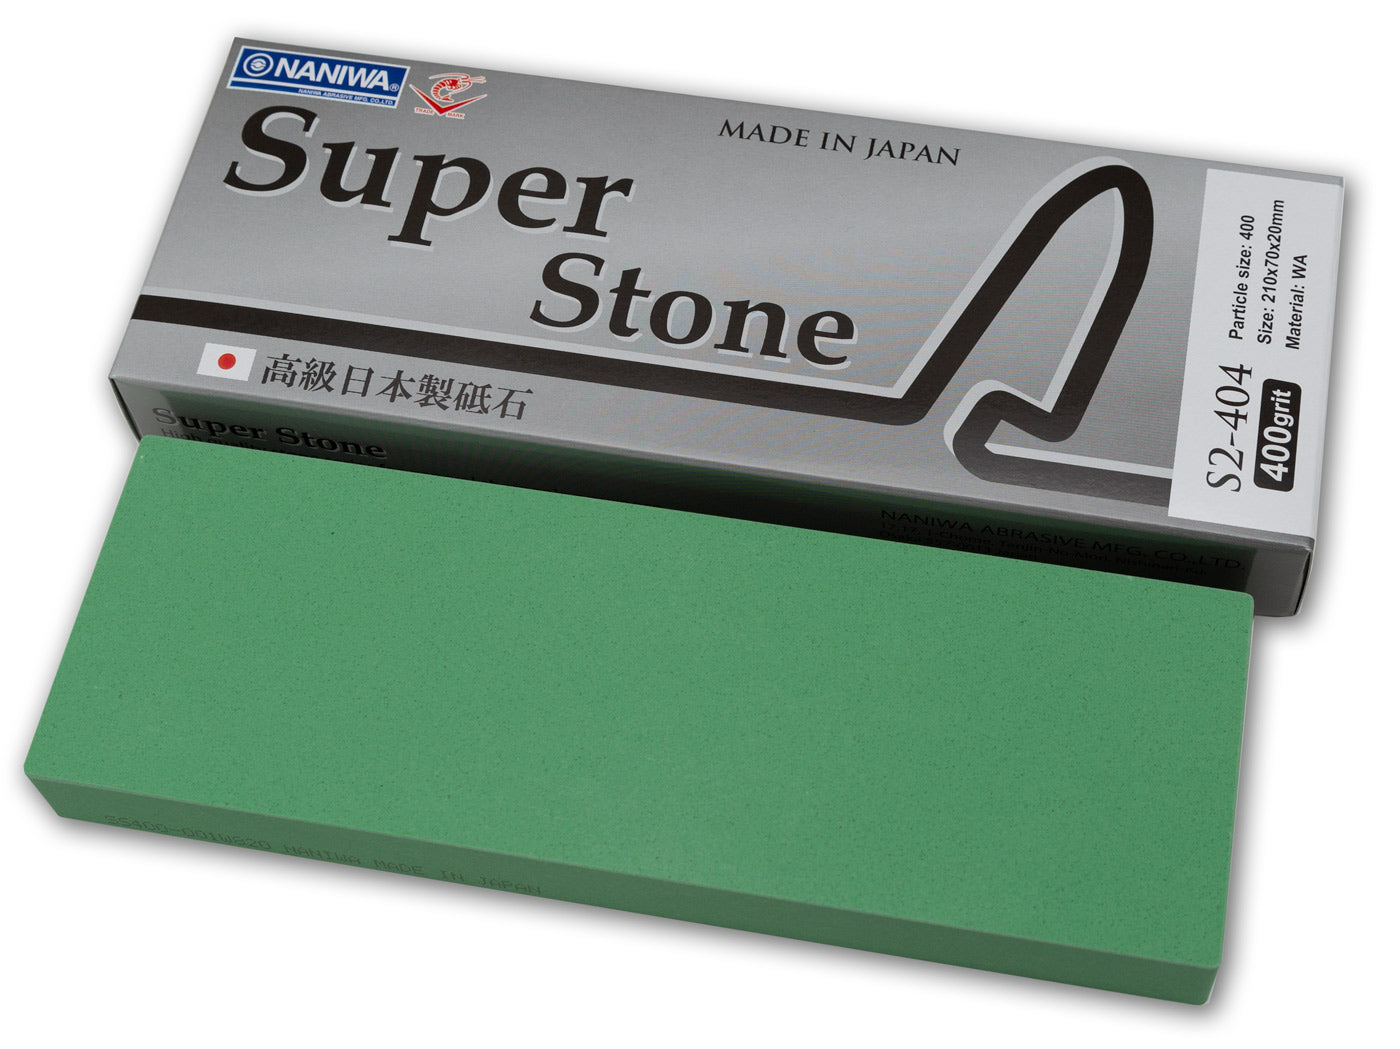 Naniwa Super-Stone Japanese Whetstone Sharpening Stone, 400 grit